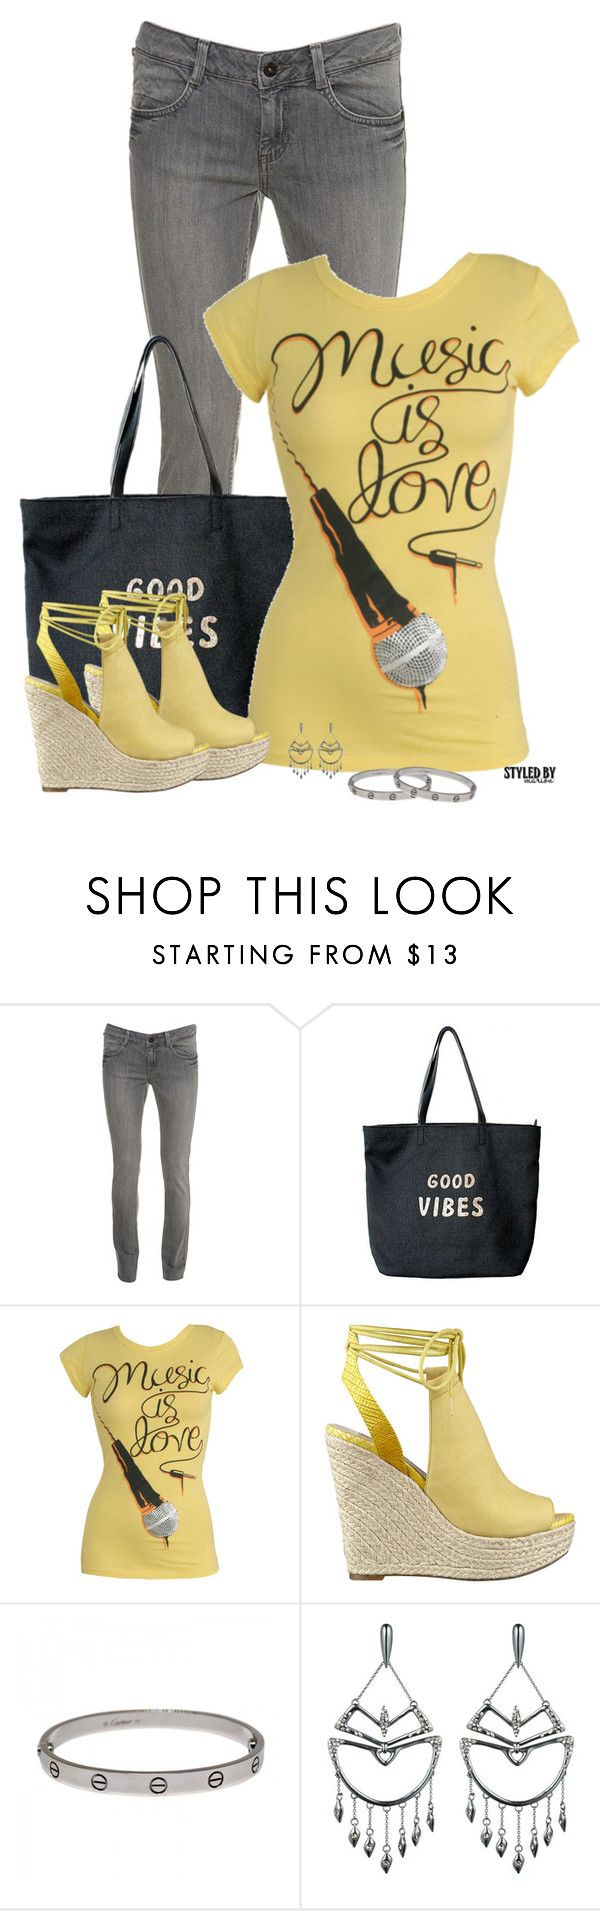 """""""Jazz Club Look"""" by marion-fashionista-diva-miller ❤ liked on Polyvore featuring Venus, Wet Seal, GUESS, Cartier, Alexis Bittar, weekendstyle, mygirls and jazzclub"""